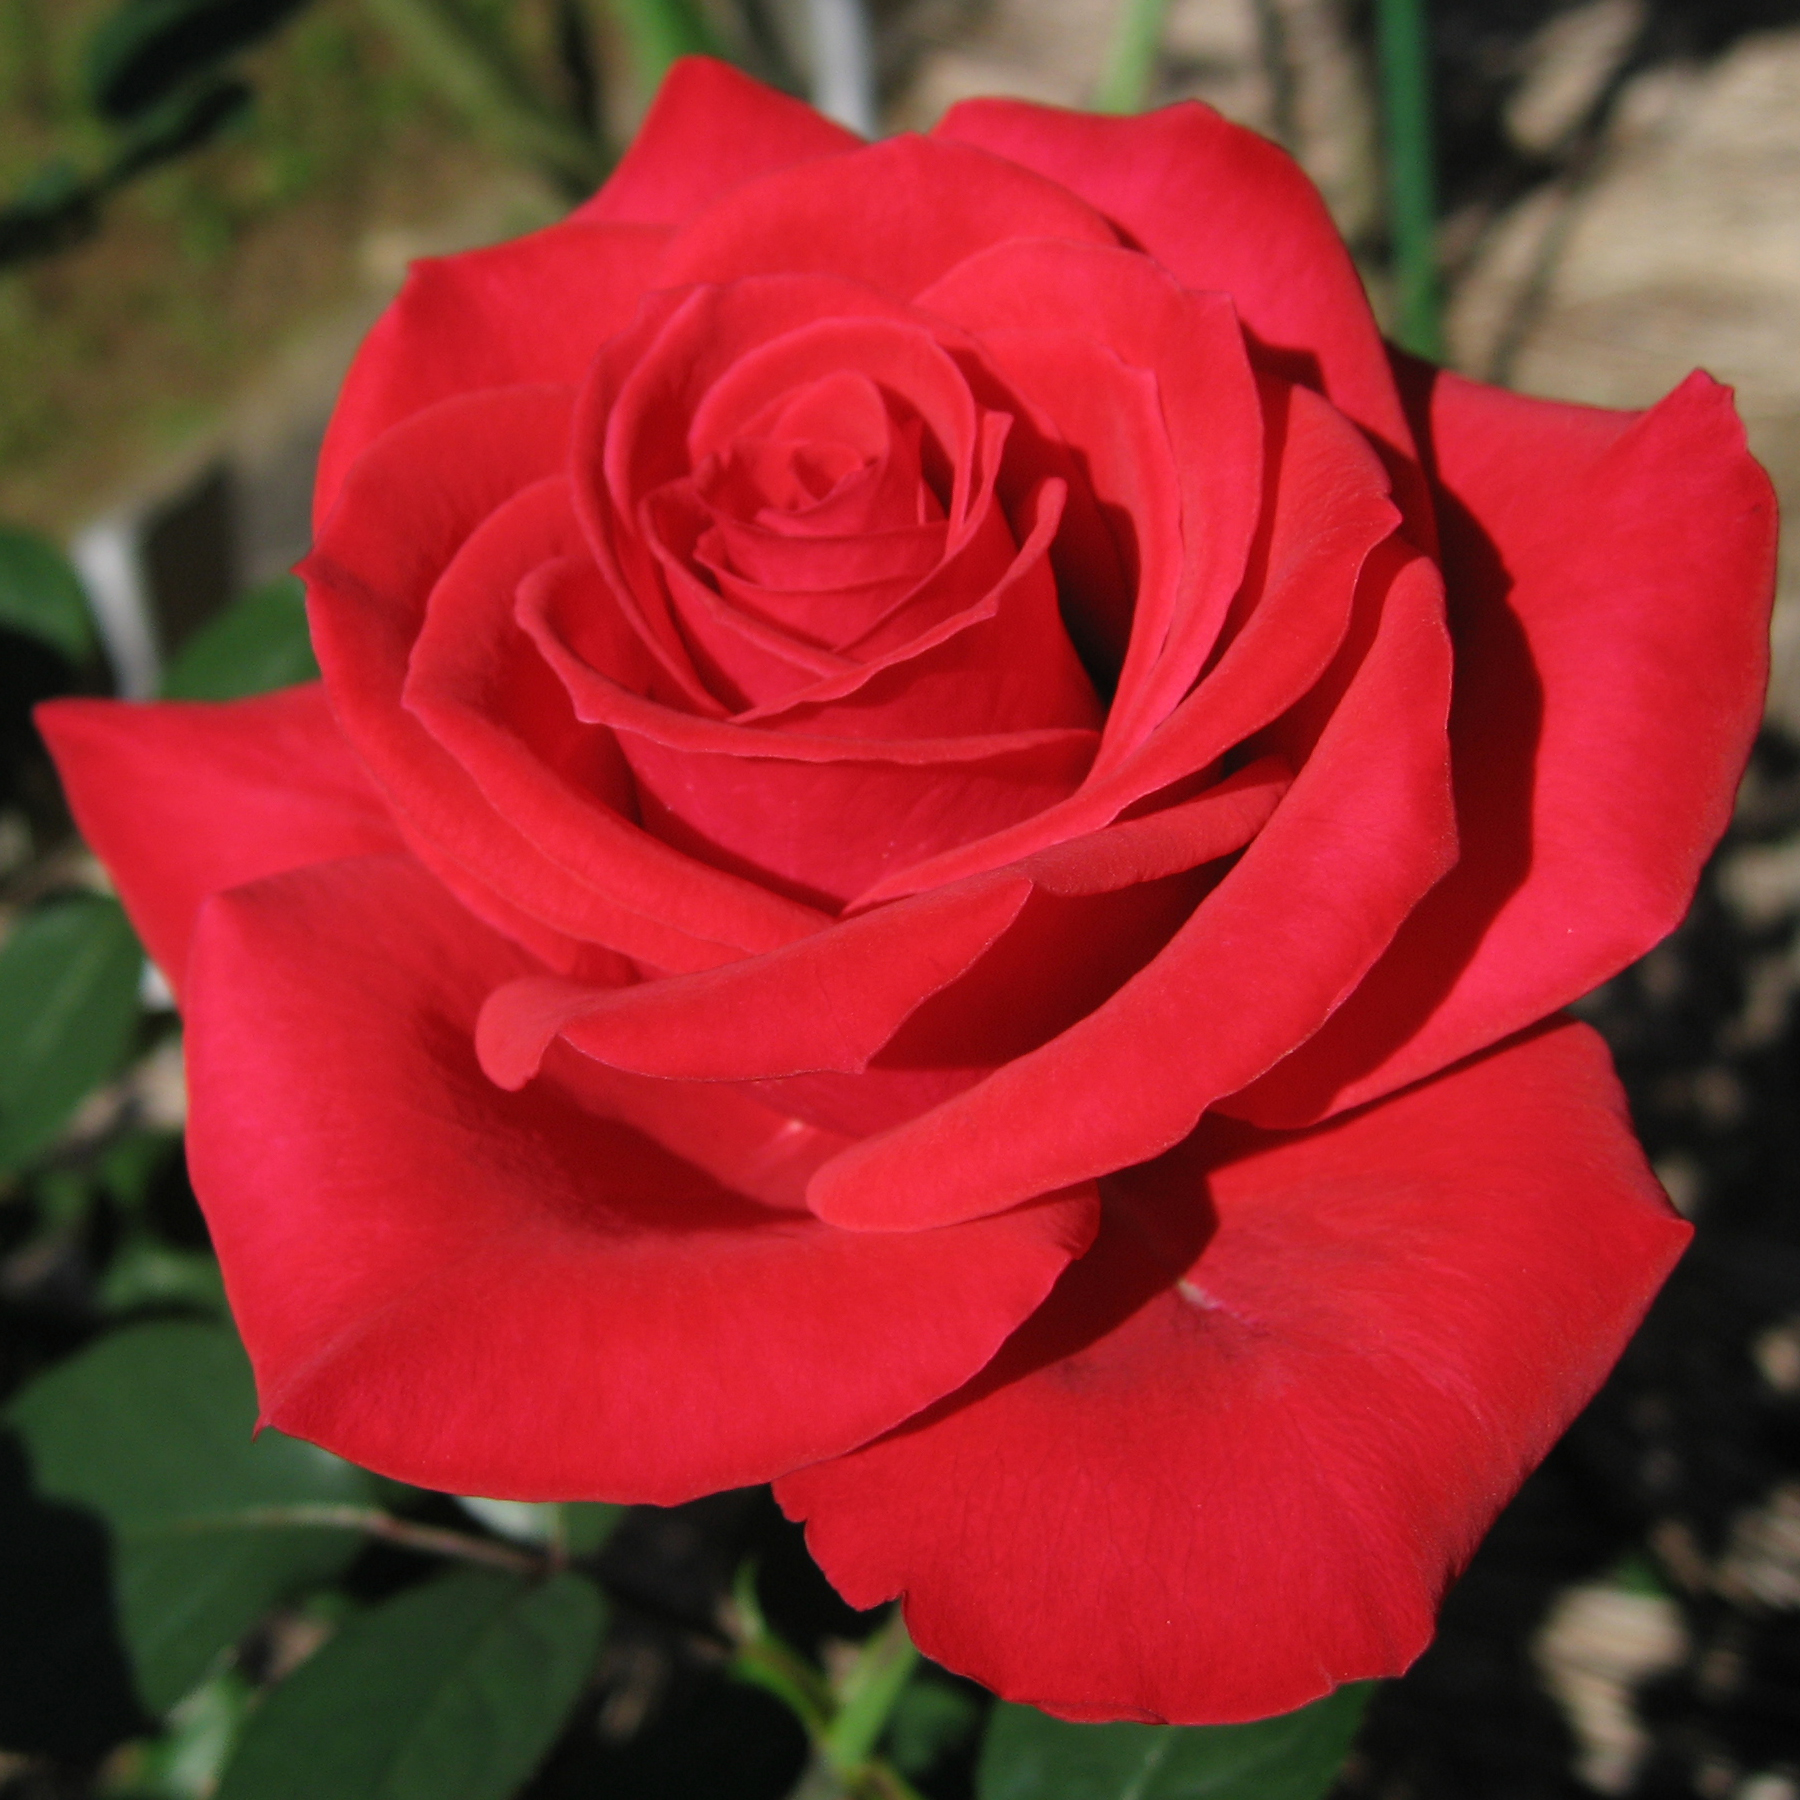 File:Rosa Red Chateau01.jpg